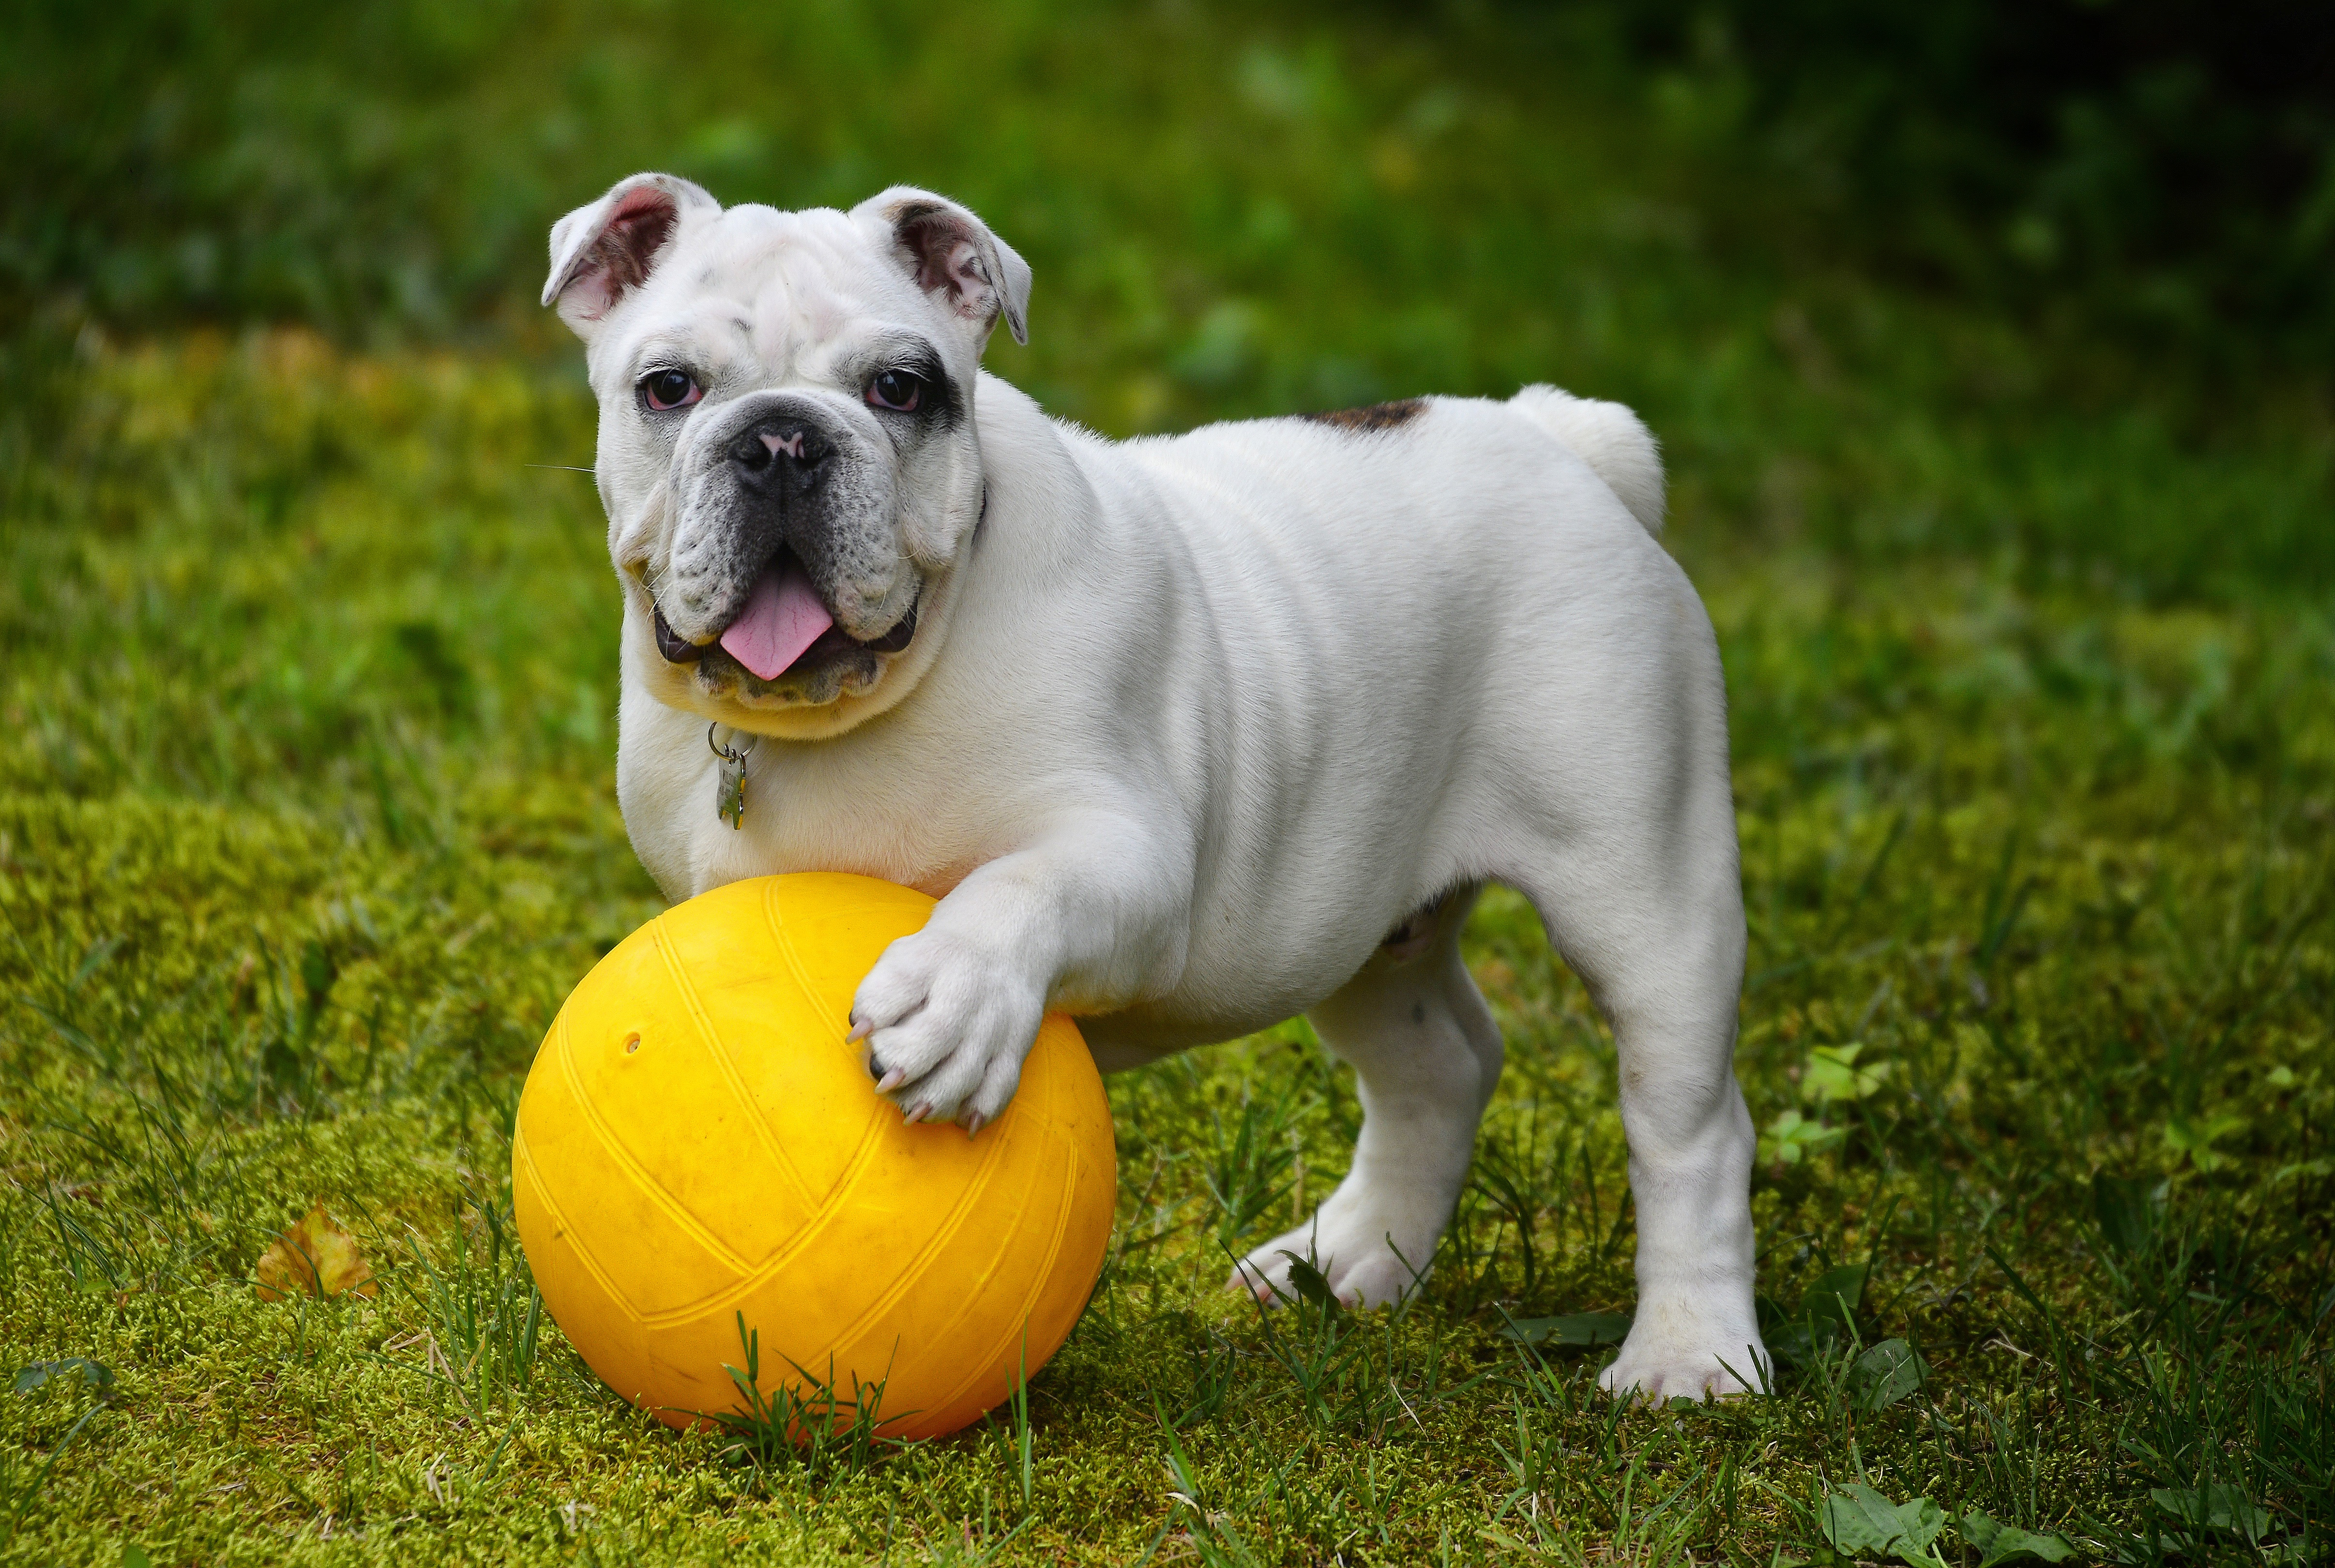 86057 download wallpaper Animals, Bulldog, Dog, Ball, Protruding Tongue, Tongue Stuck Out, Funny screensavers and pictures for free